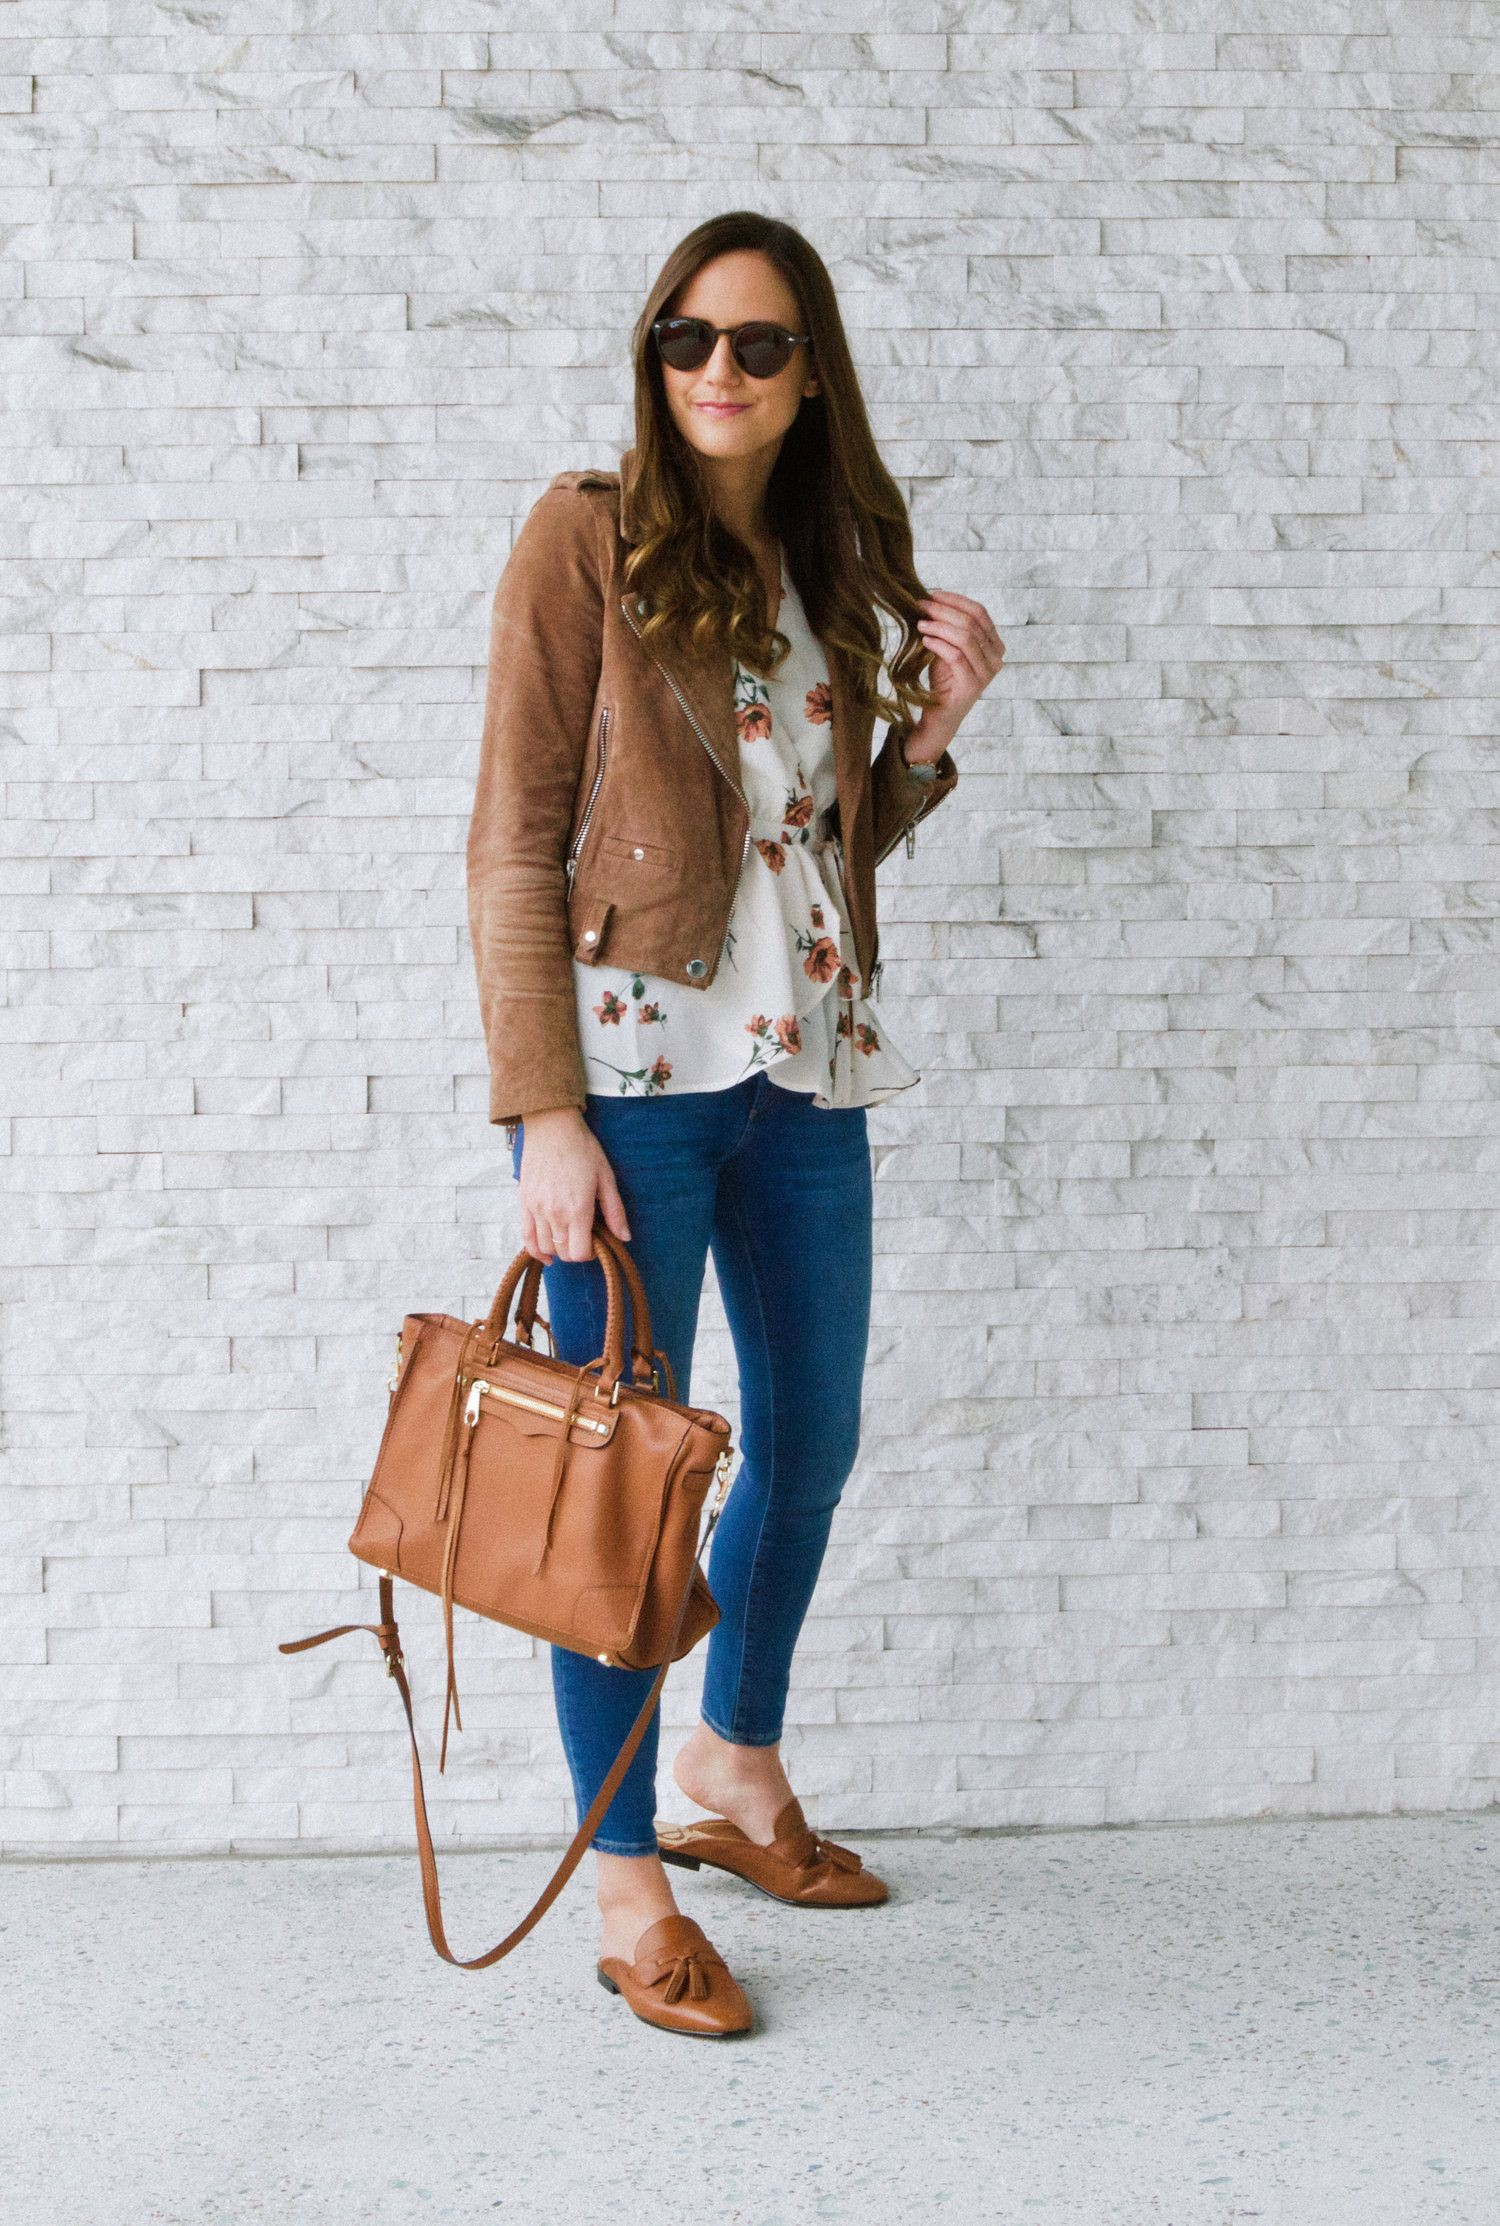 Style brown loafers outfit women